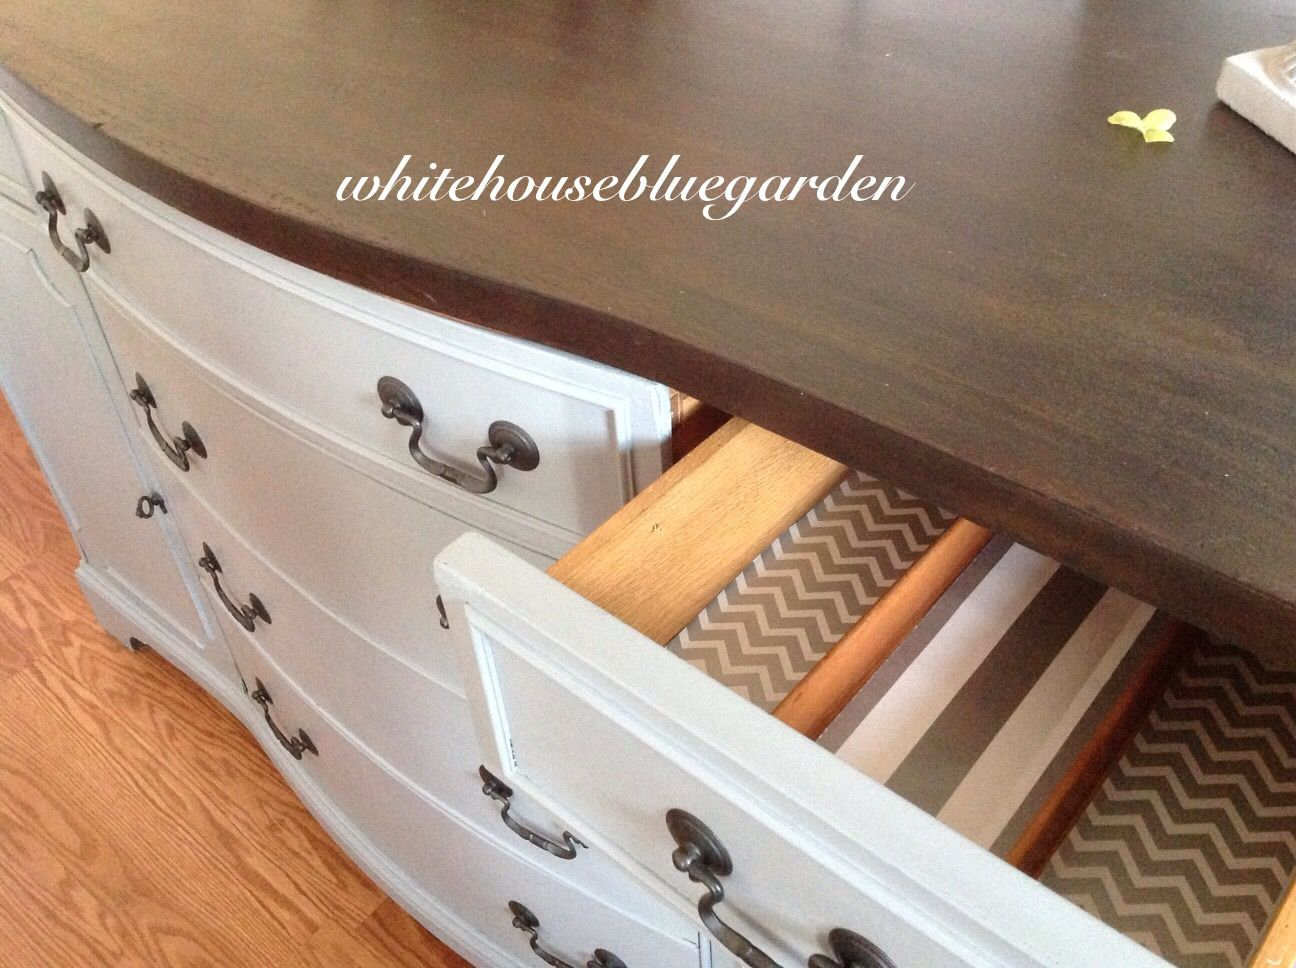 Kona top and Pencil Sketch chlak paint. Chevron & striped papered drawers.